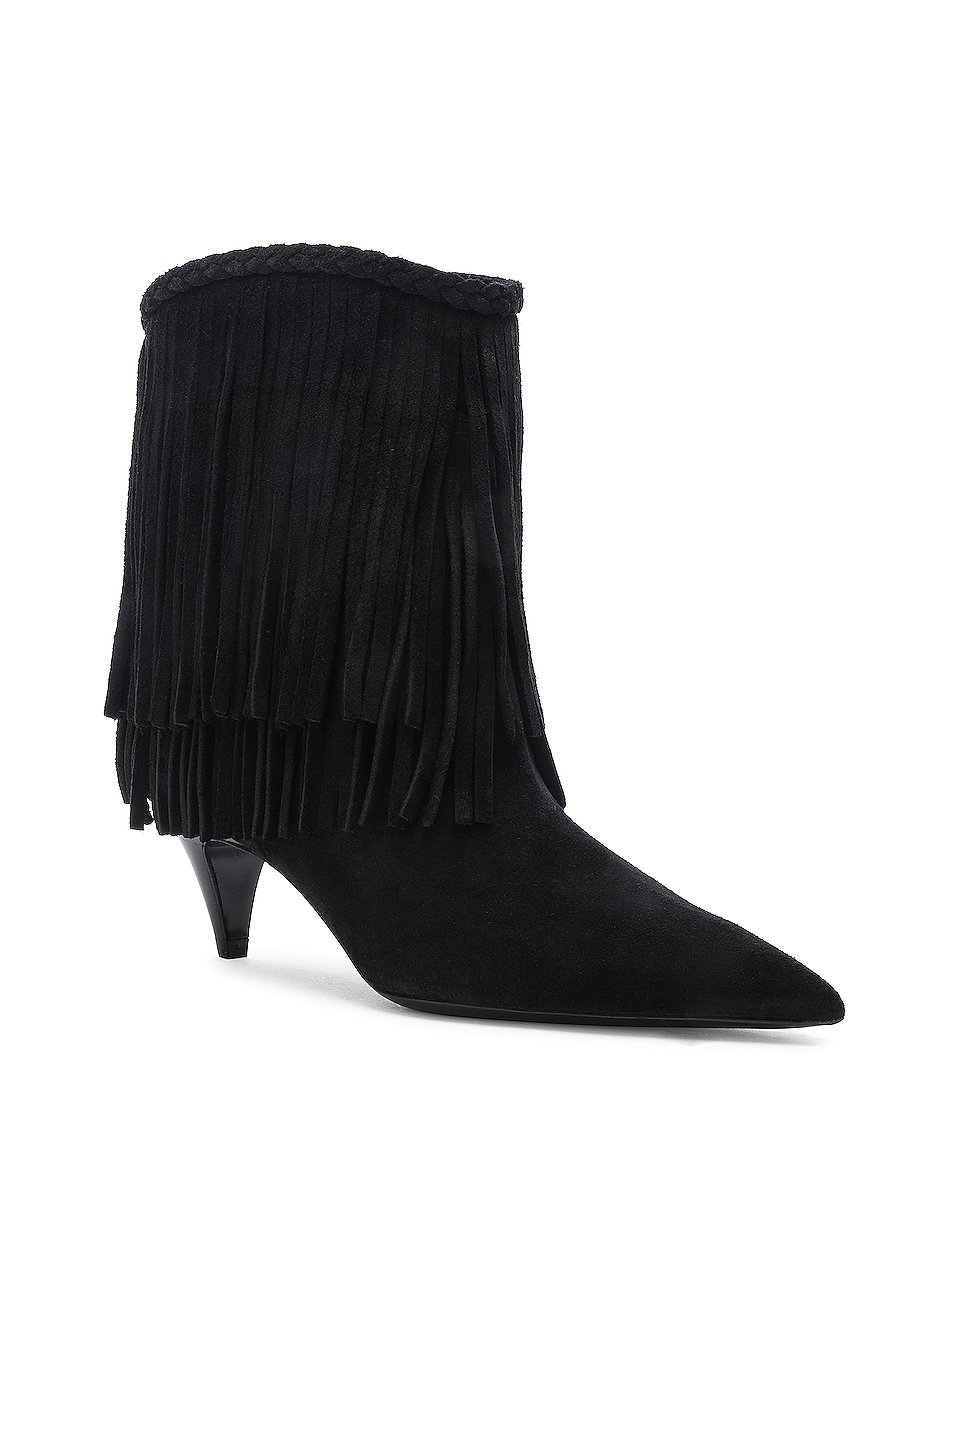 Image 2 of Saint Laurent Charlotte Fringe Booties in Black